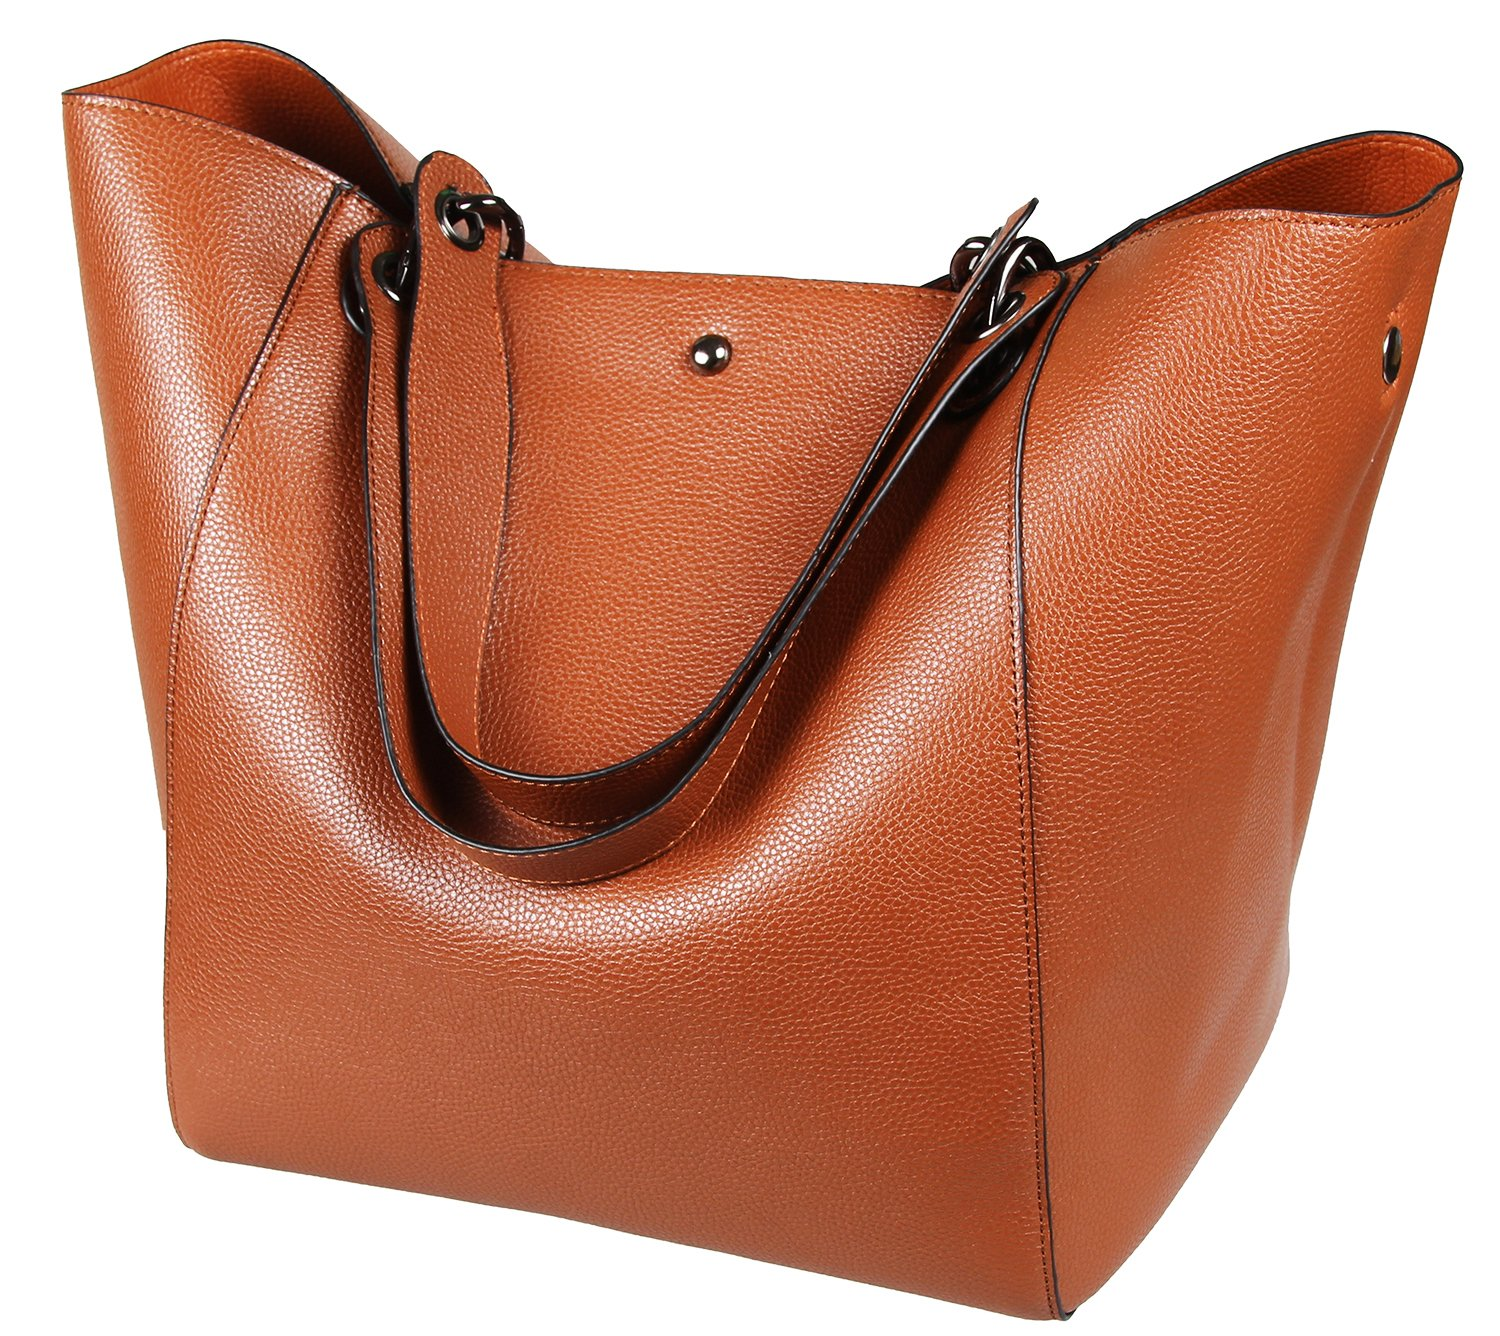 SQLP Tote Bags Purses and Handbags for Women Leather Shoulder Bags Brown